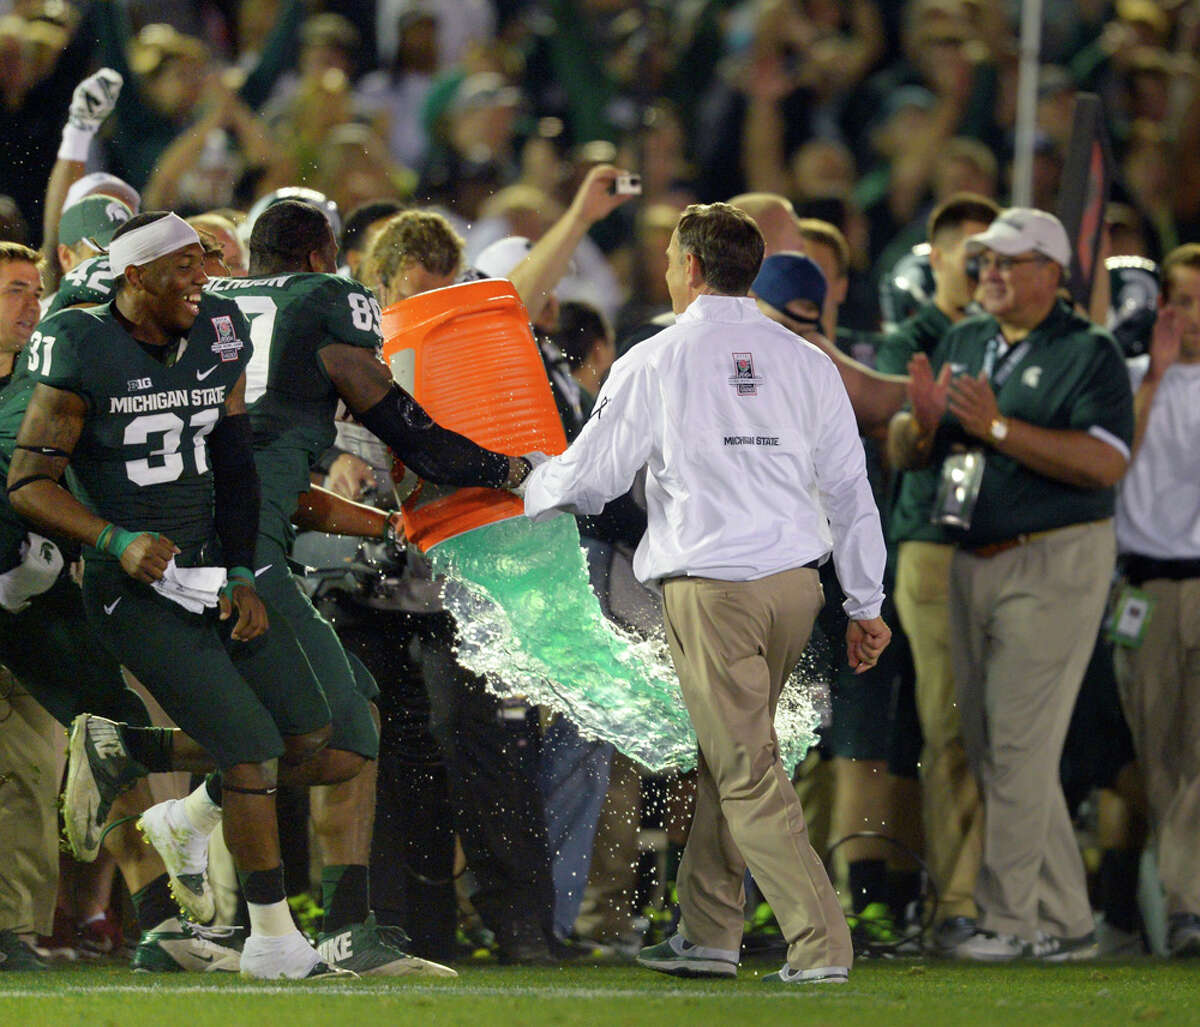 Michigan State head coach Mark Dantonio is missed by getting hit by a bucket of energy drink after defeating Stanford 24-20 at the Rose Bowl Game presented by VIZIO on Jan. 1, 2014, in Pasadena, Calif.